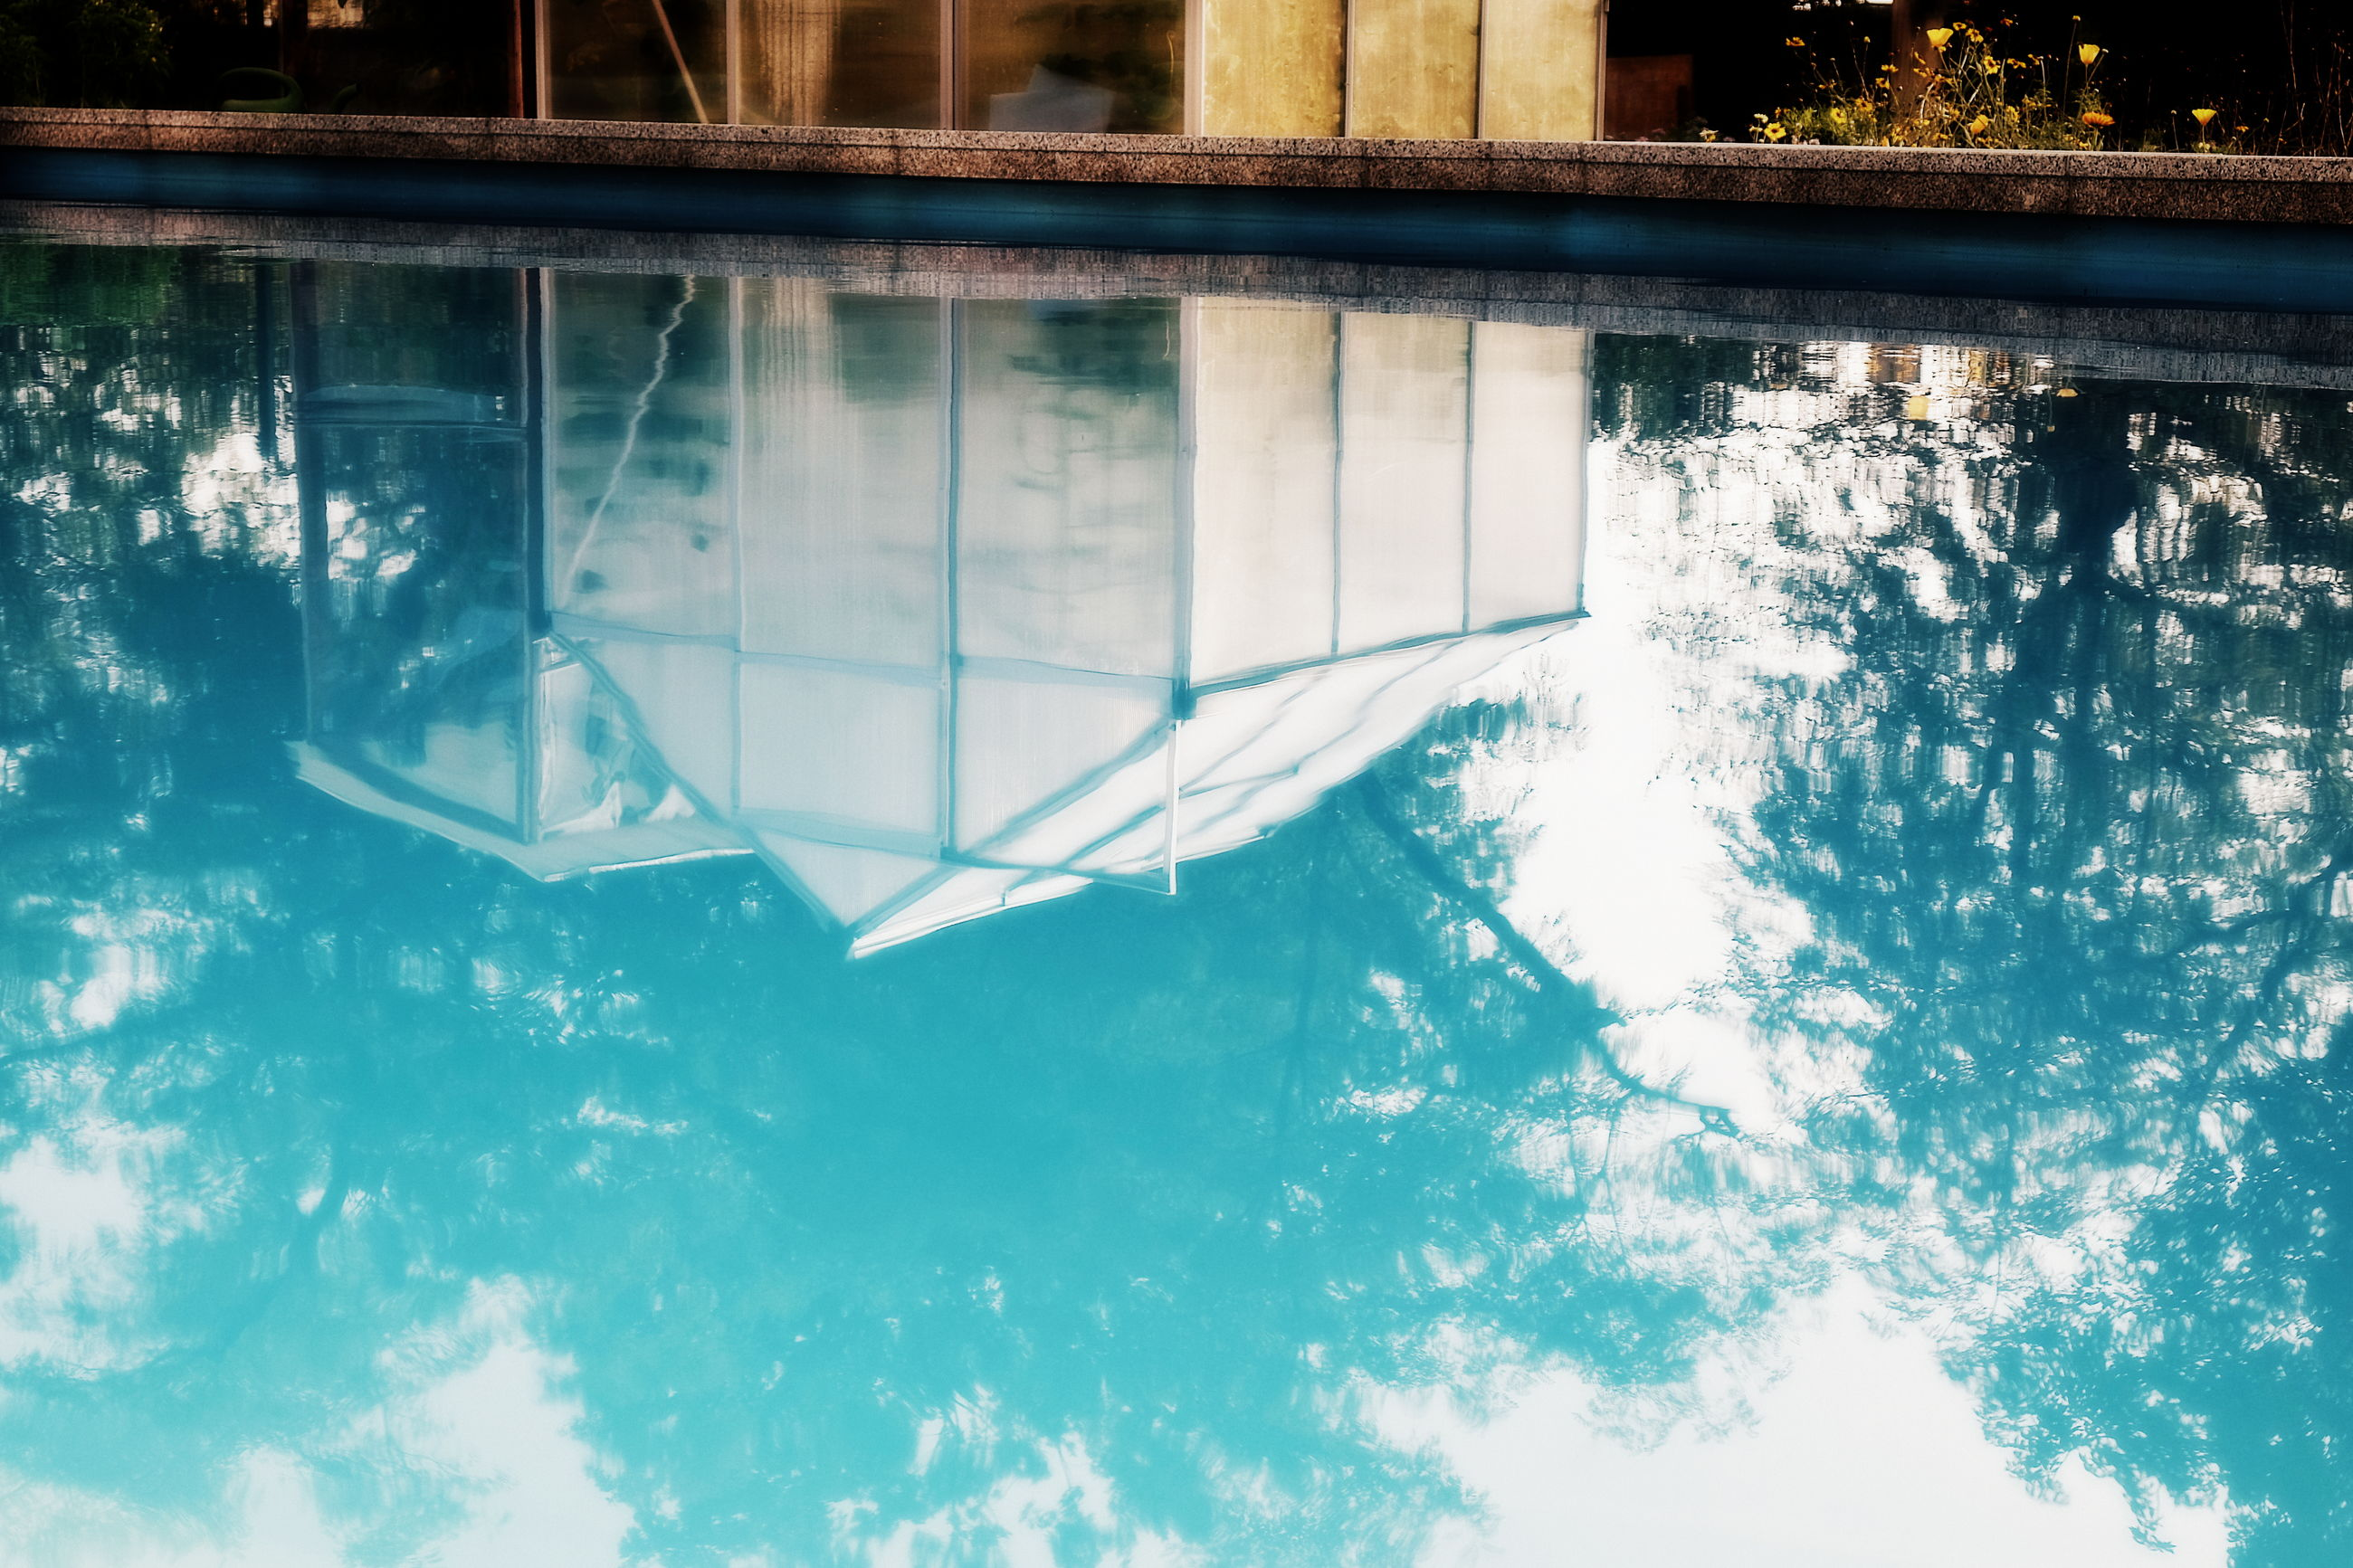 water, pool, reflection, swimming pool, day, nature, waterfront, no people, architecture, built structure, outdoors, sunlight, window, glass - material, transparent, building exterior, blue, sea, high angle view, floating on water